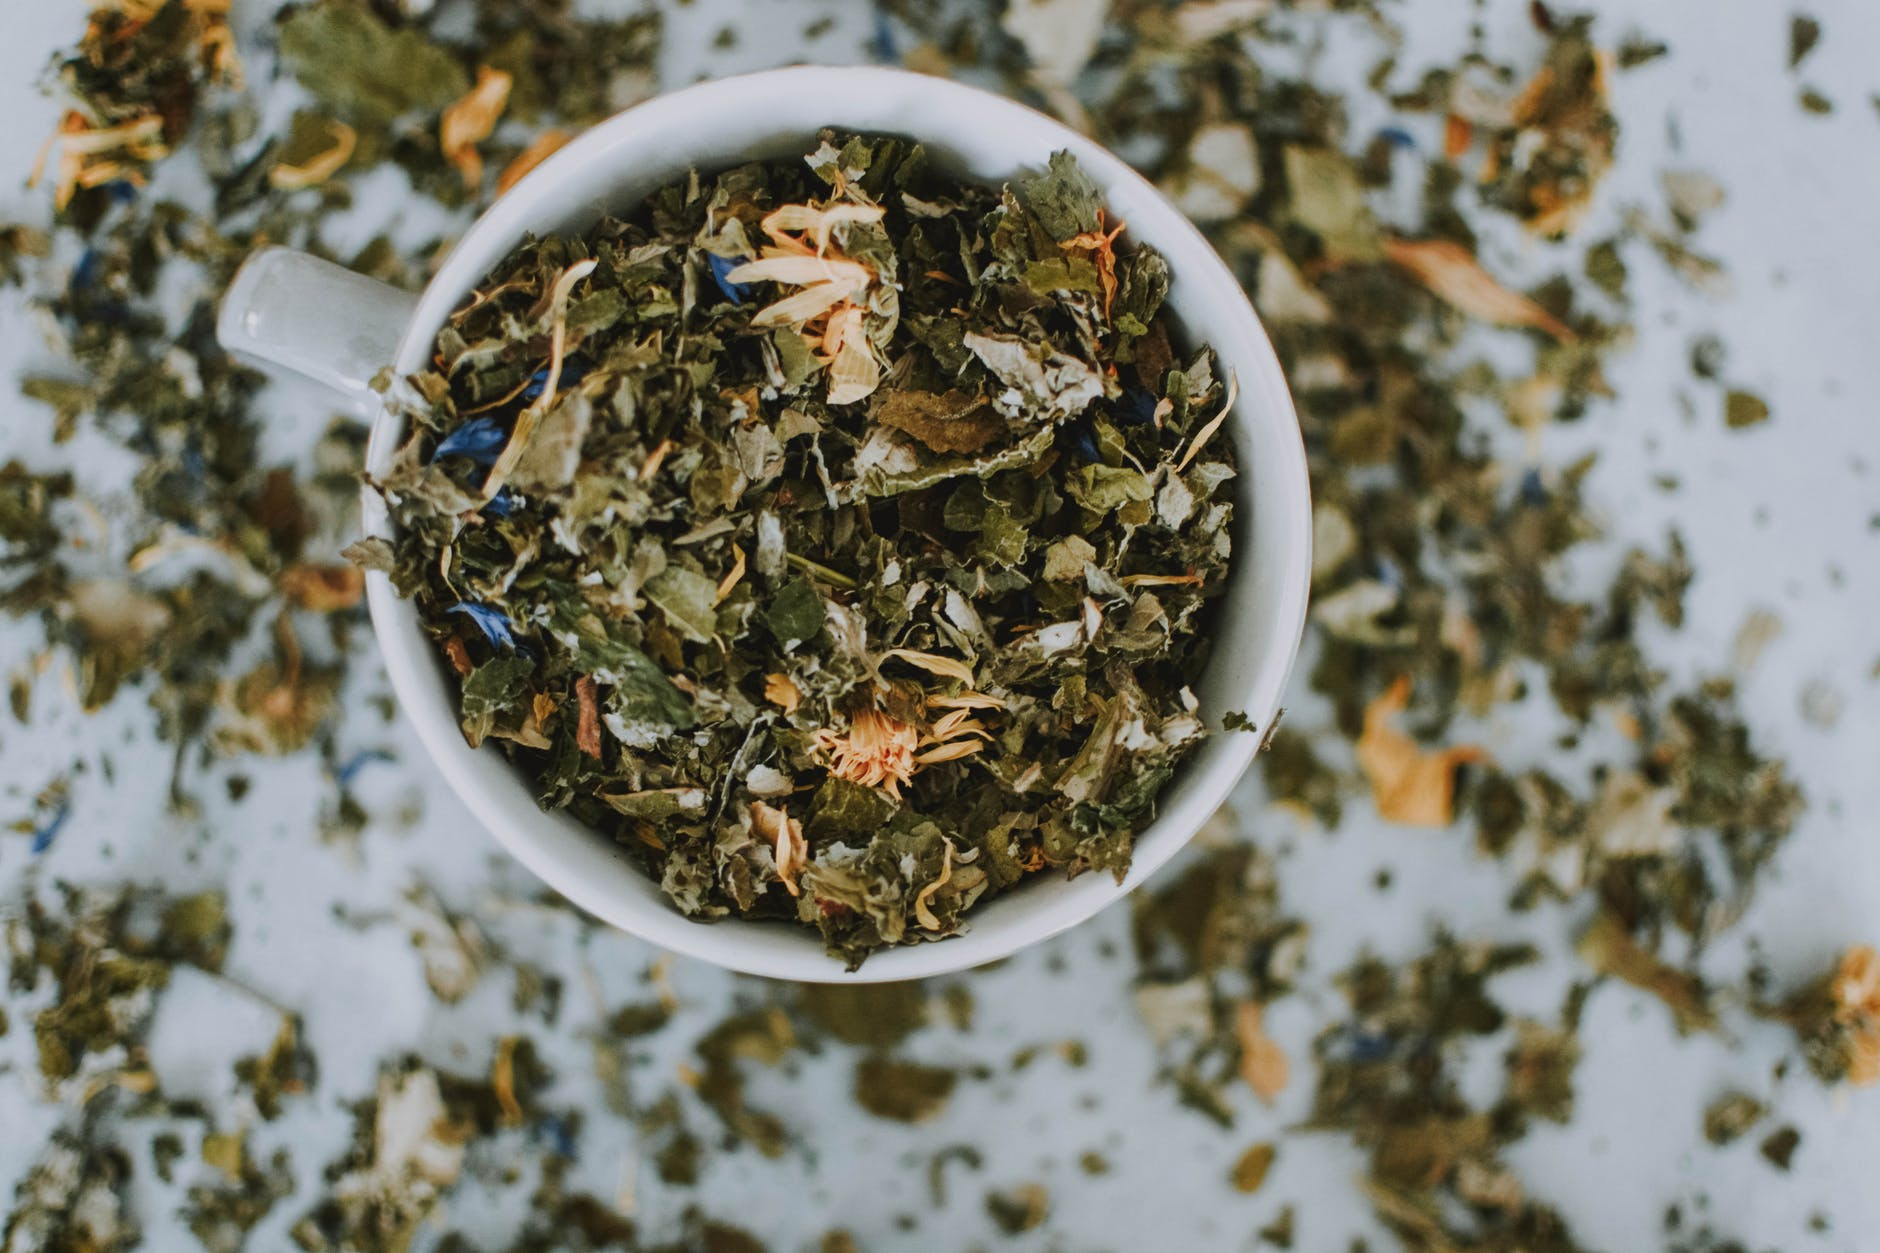 Herbal Tea leaves